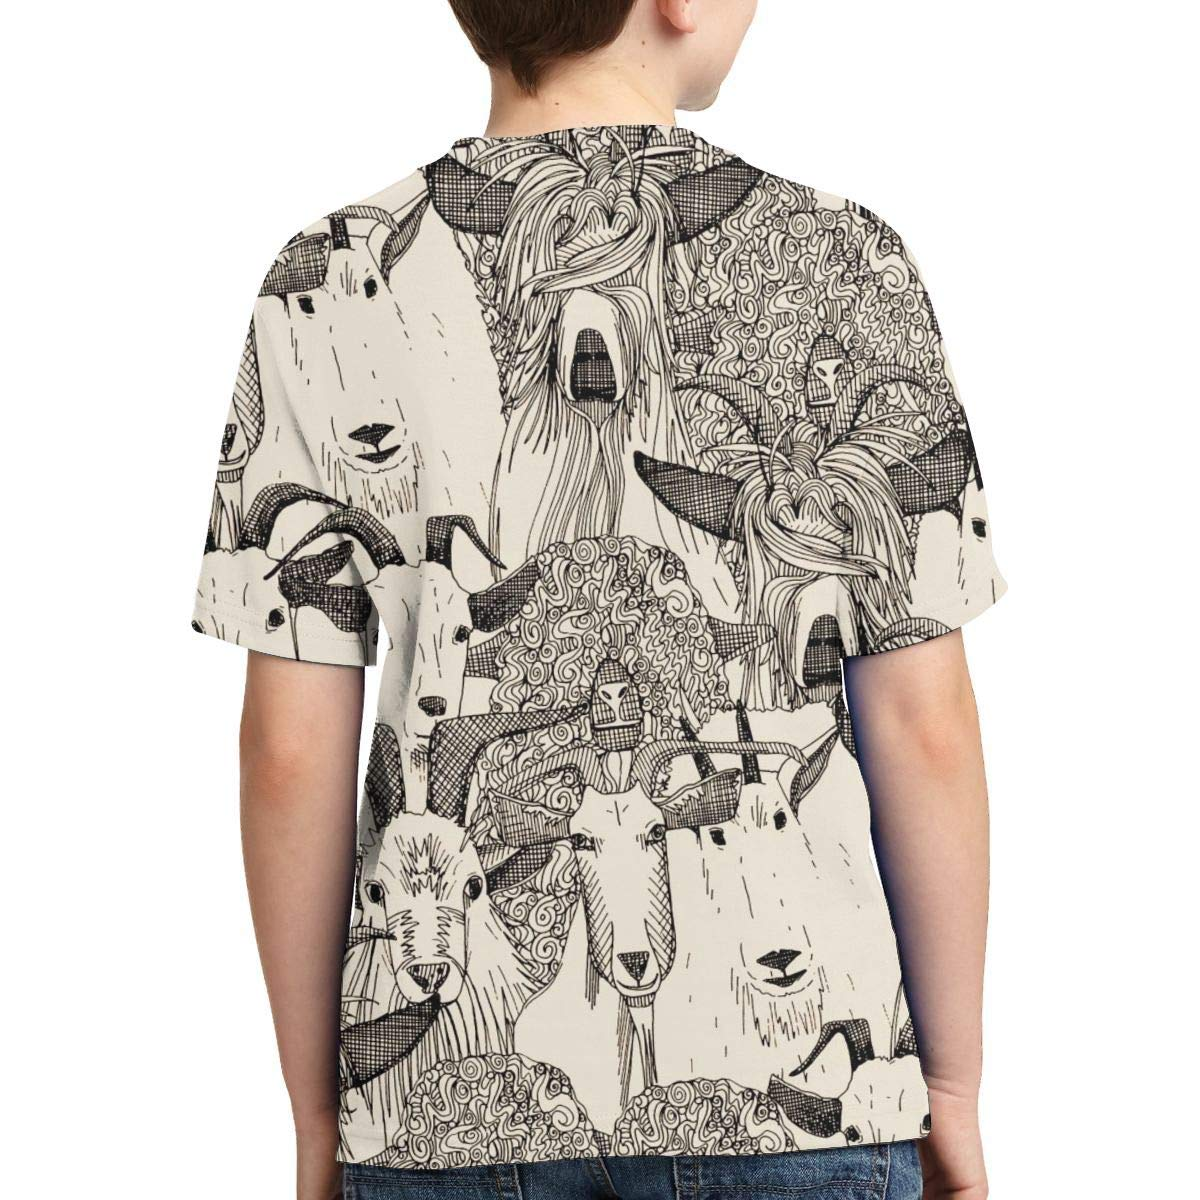 OPQH Boys Short Sleeve Just Goats Natural 3D Print T-Shirts Graphic Tees for Kids Teens